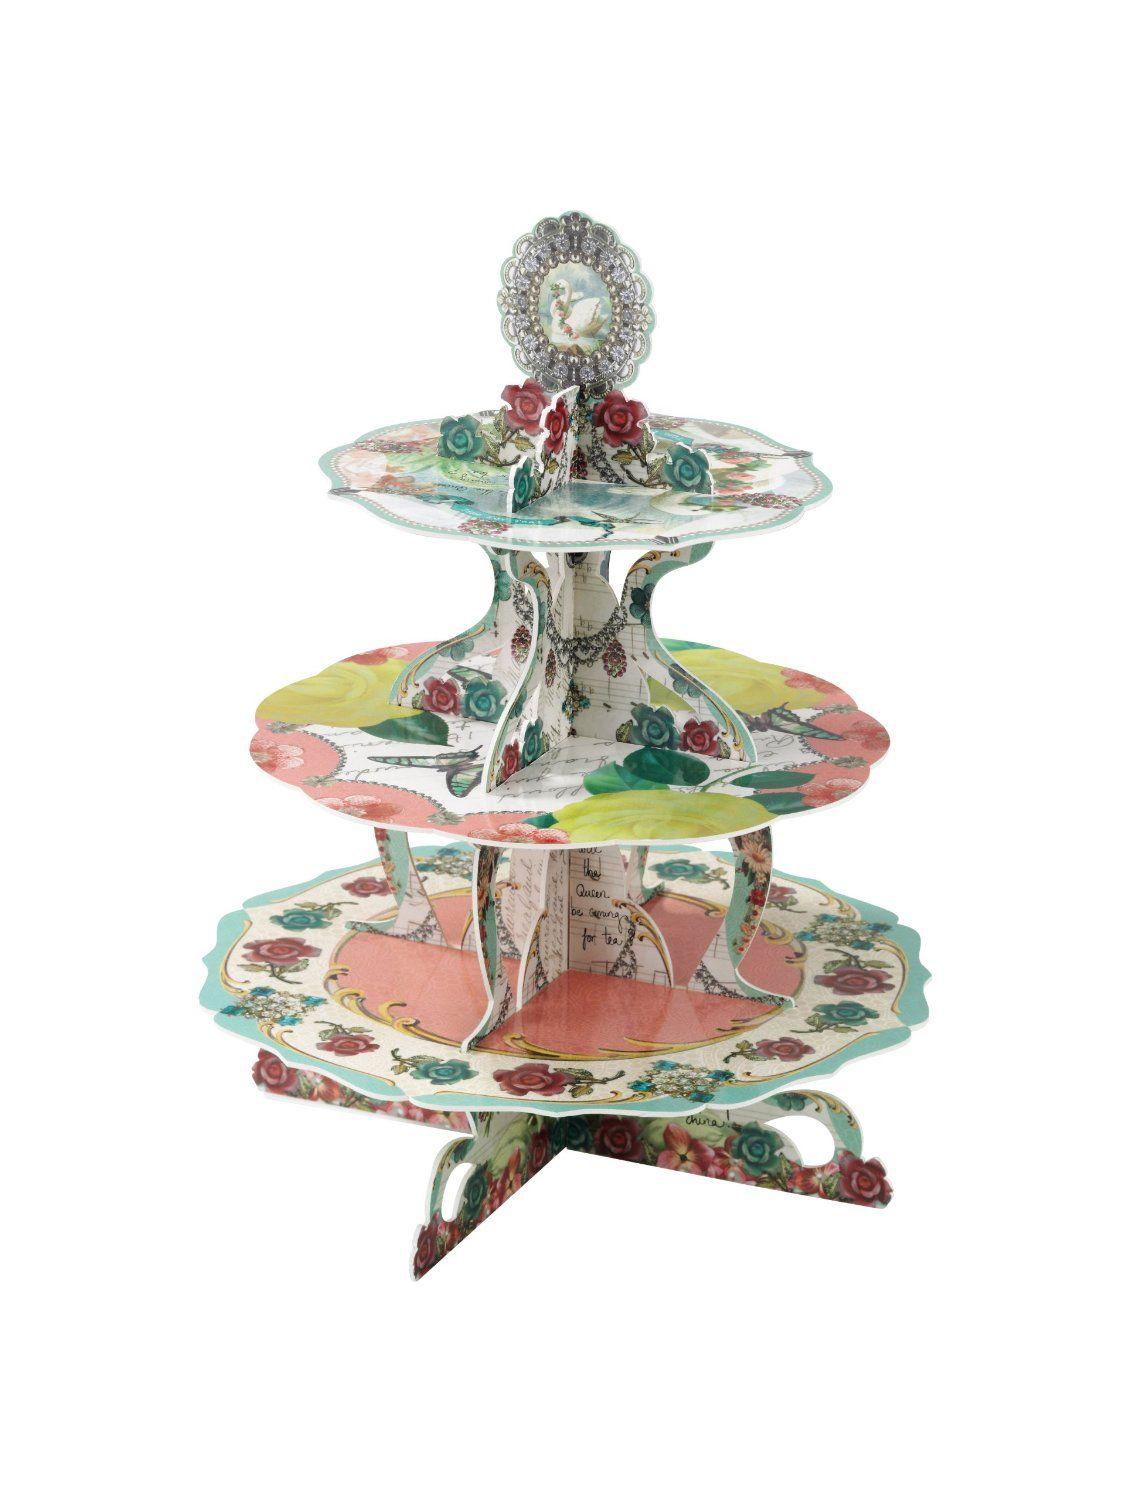 Amazon.com: Talking Tables Pastries and Pearls Cake Stand: Kitchen & Dining